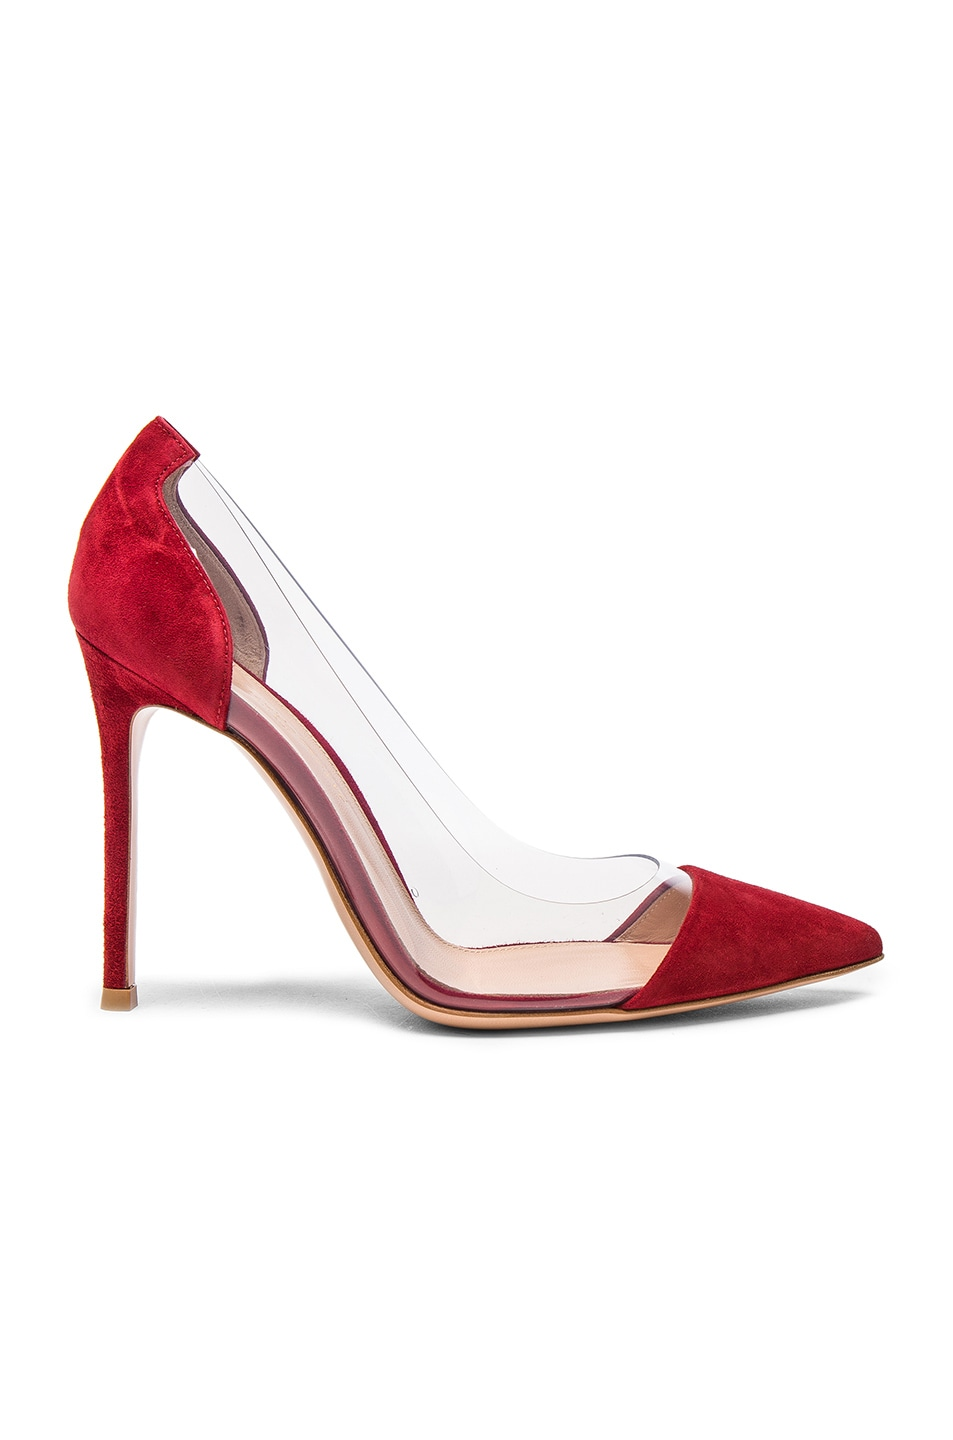 Image 1 of Gianvito Rossi Suede Plexi Pumps in Granata